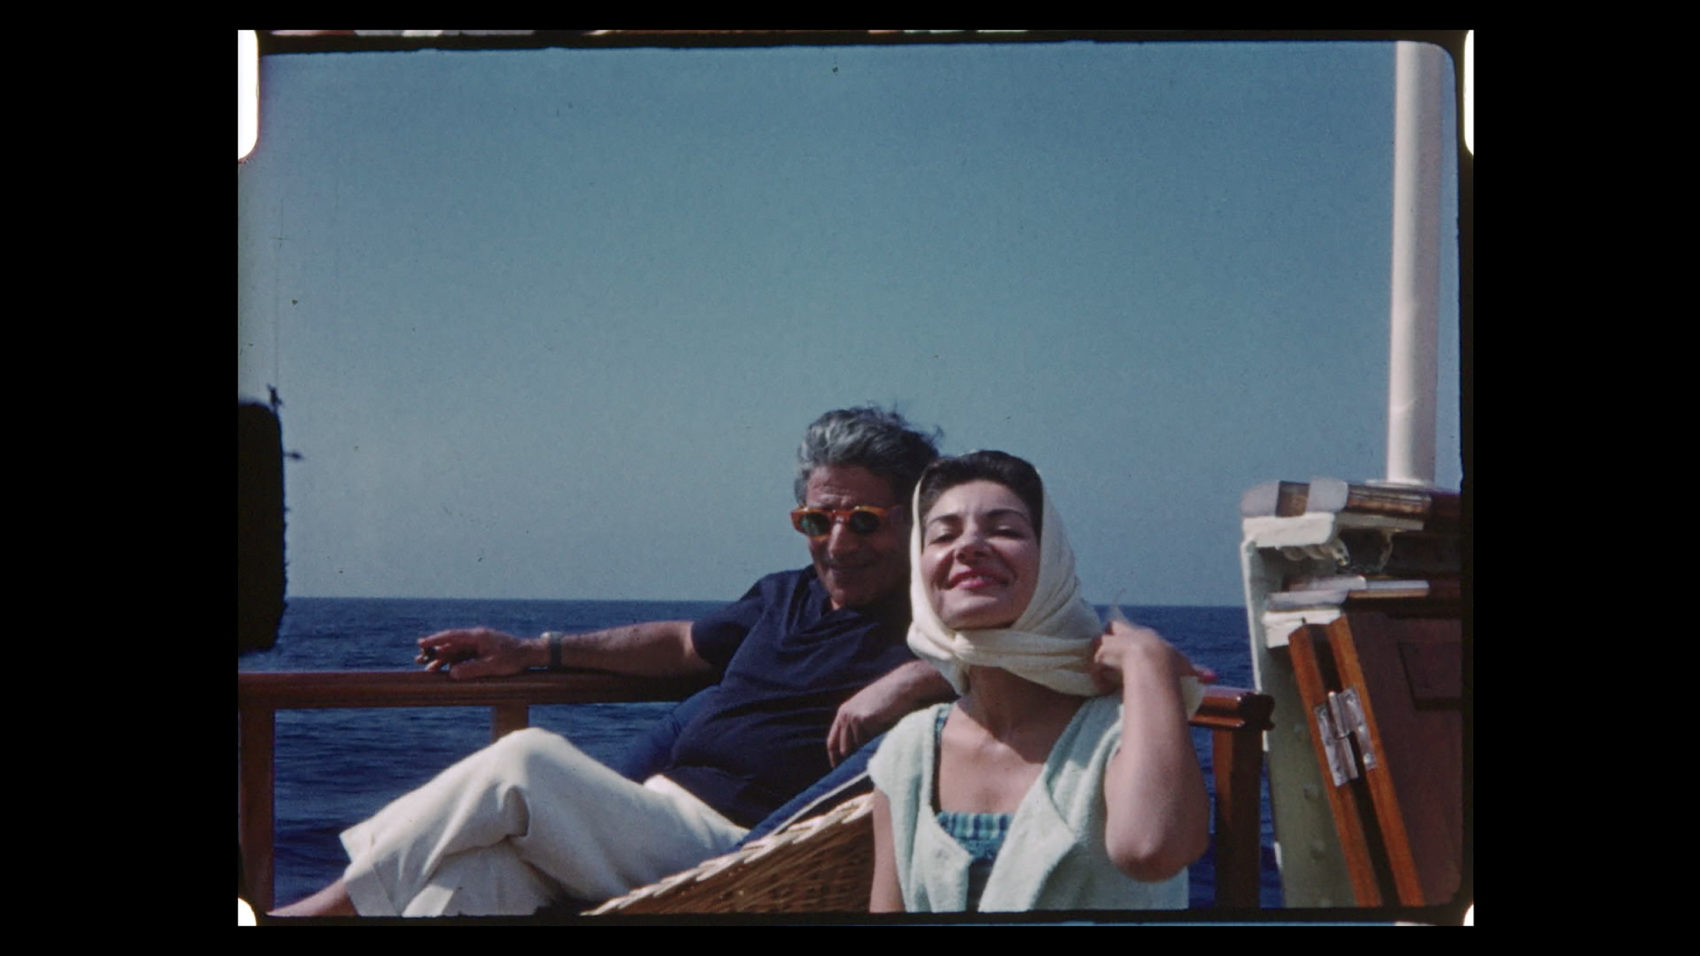 Aristotle Onassis, left, with Maria Callas. The two carried on a love affair that received much publicity. (Sony Pictures Classics/Sony Pictures)